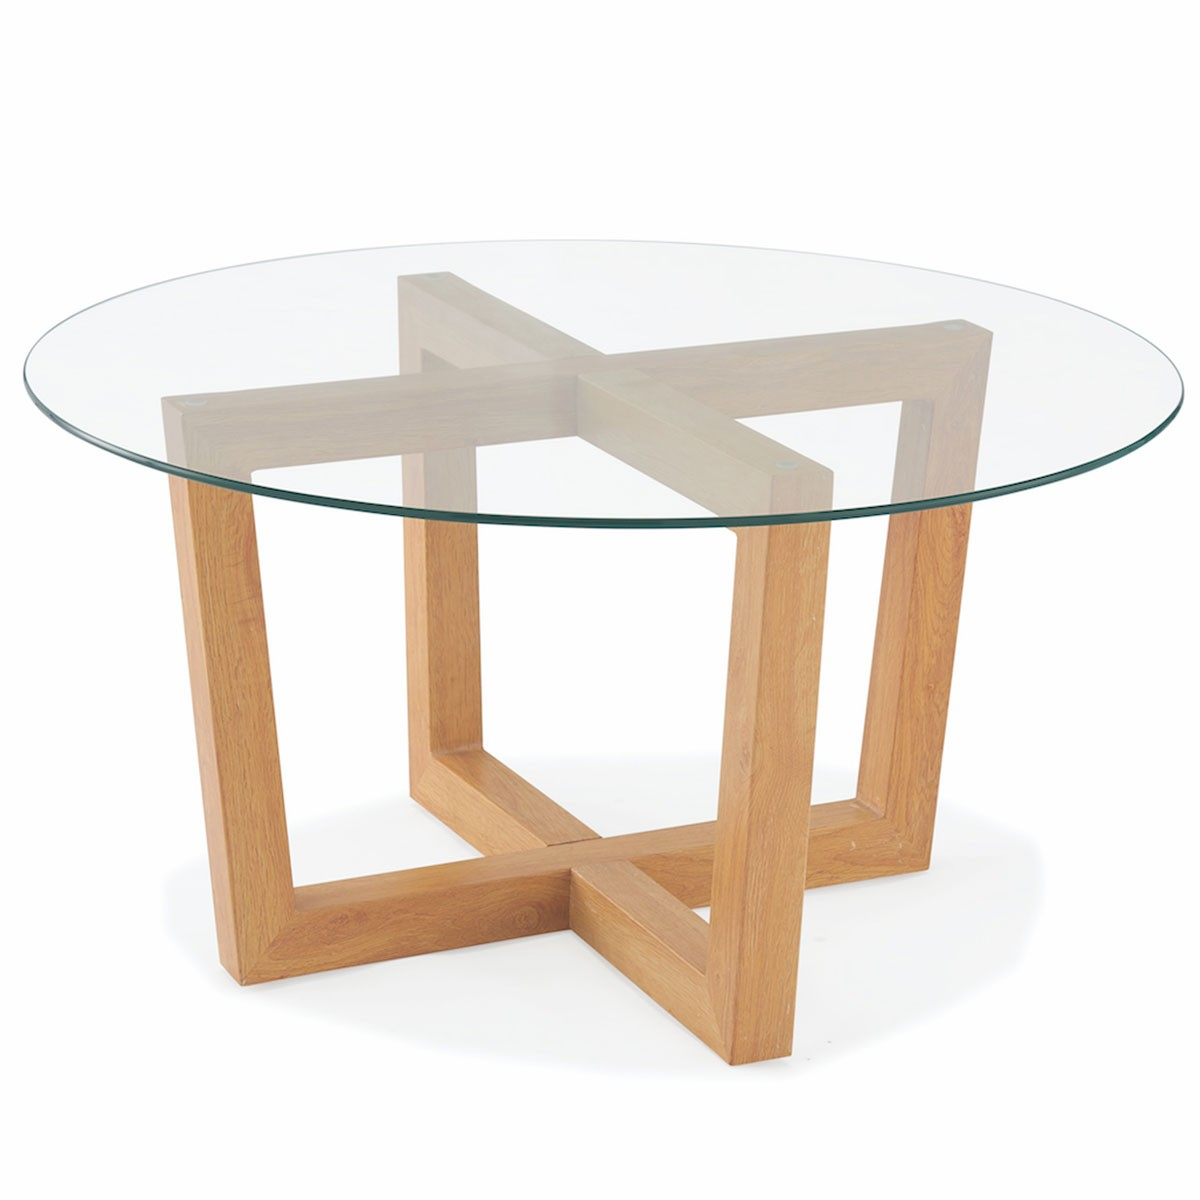 Table basse ronde pied bois